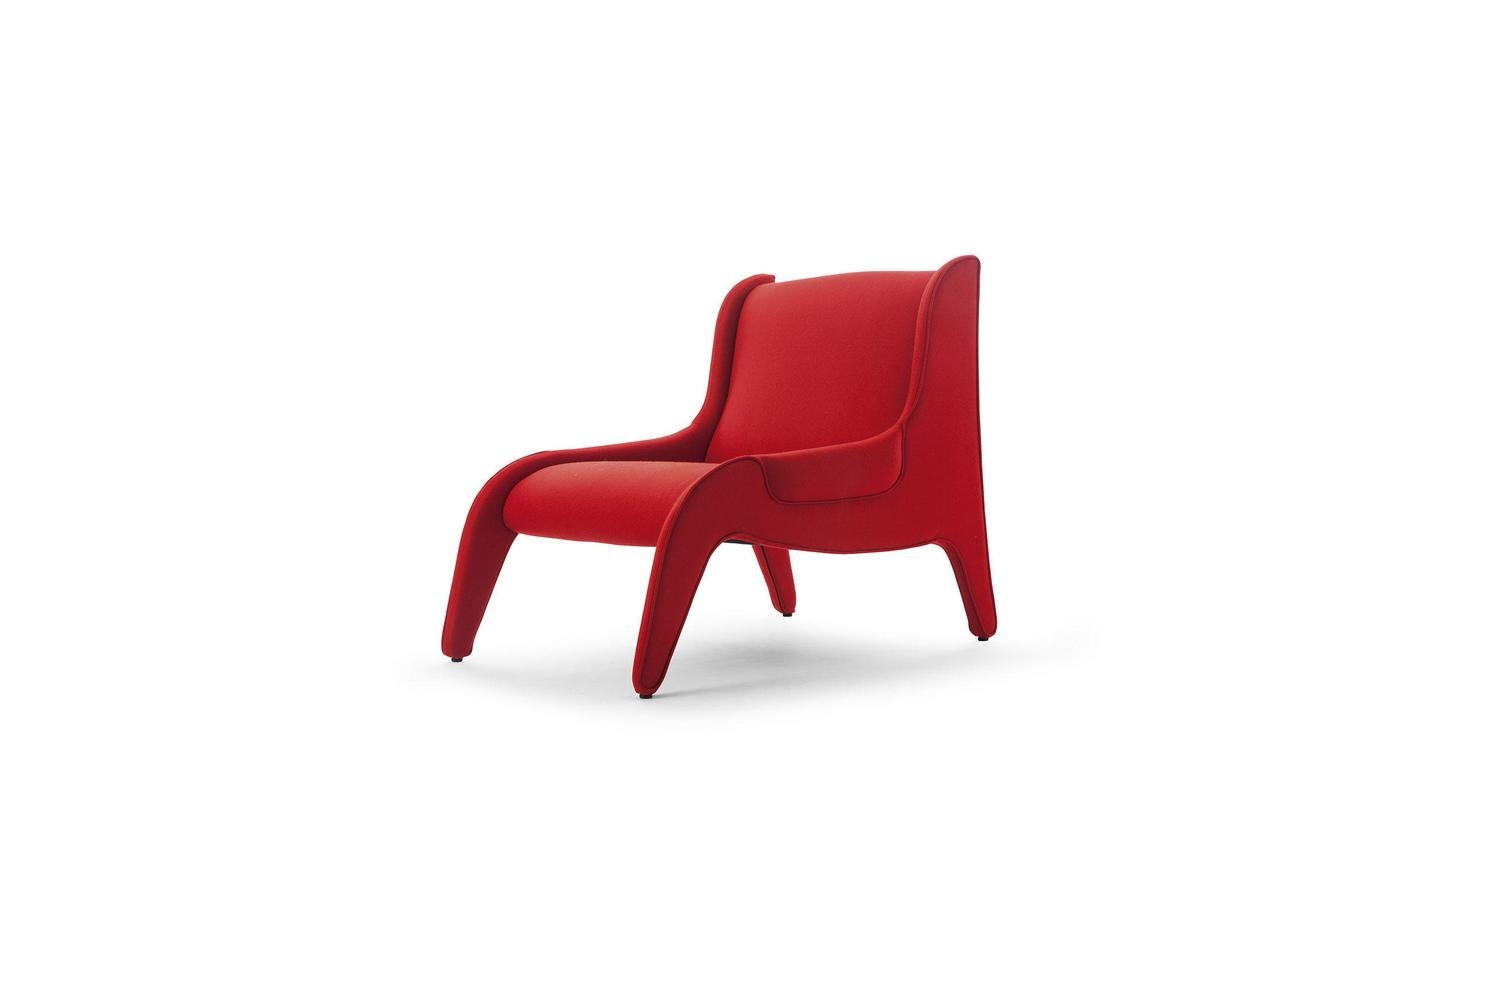 721 Antropus Armchair by Marco Zanuso for Cassina